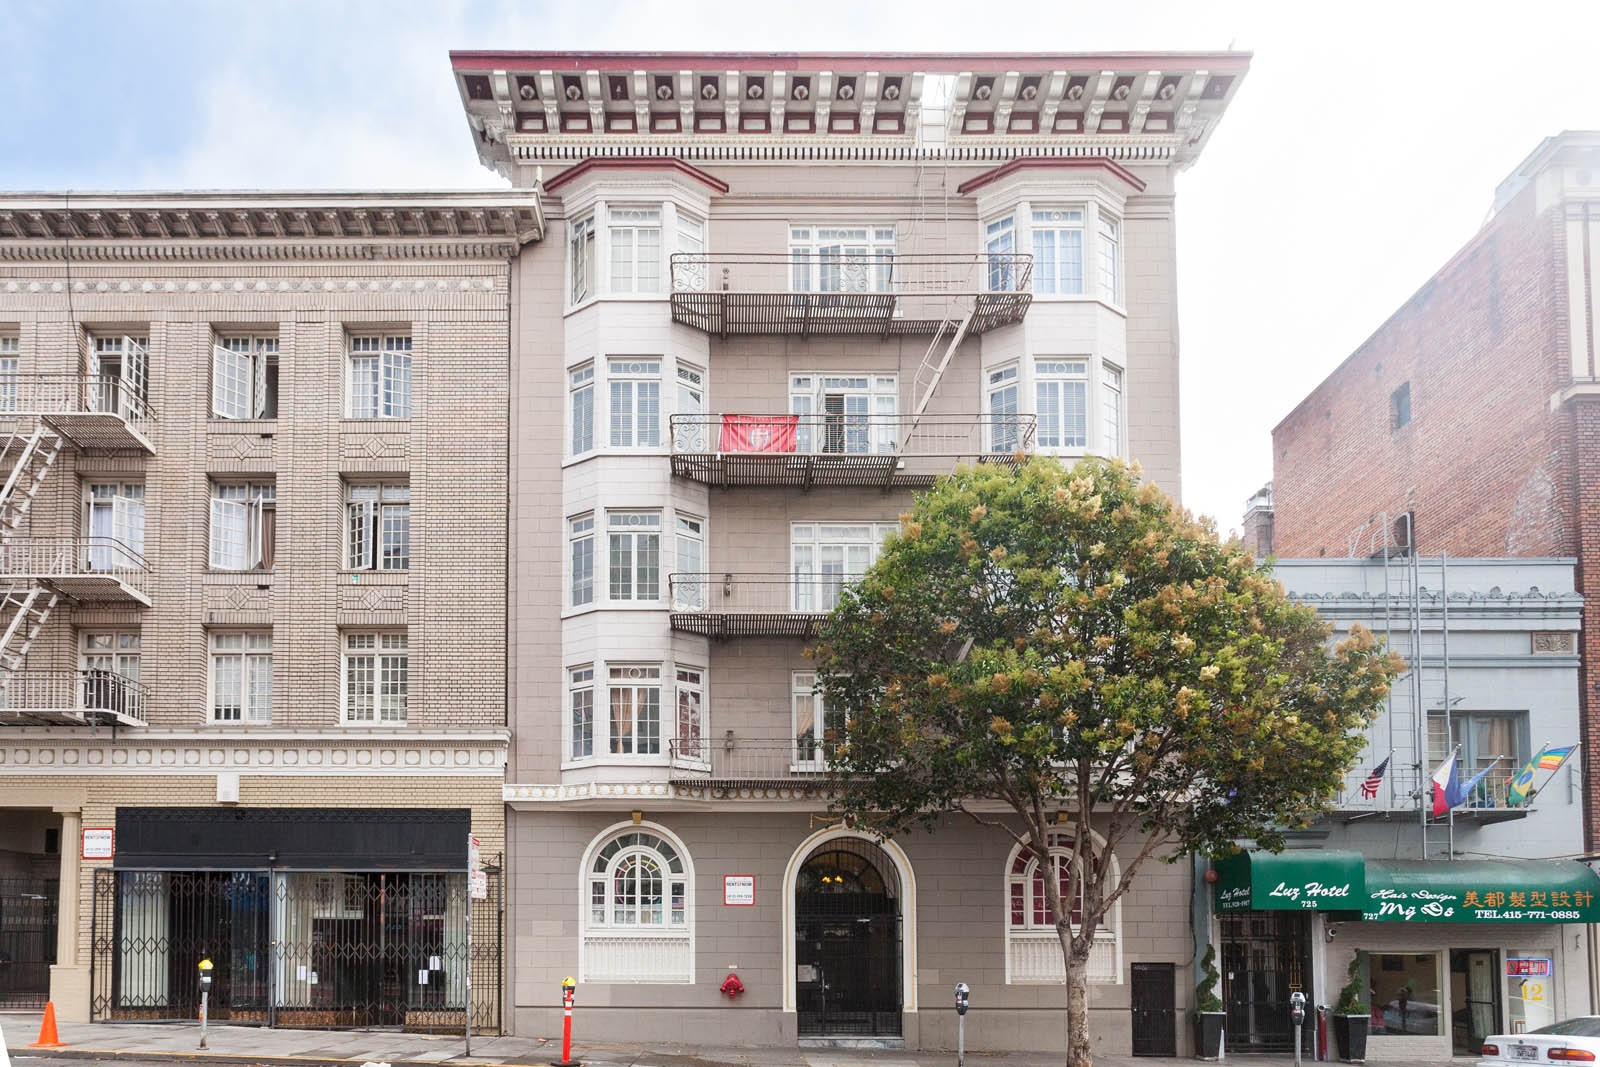 721 GEARY Apartments